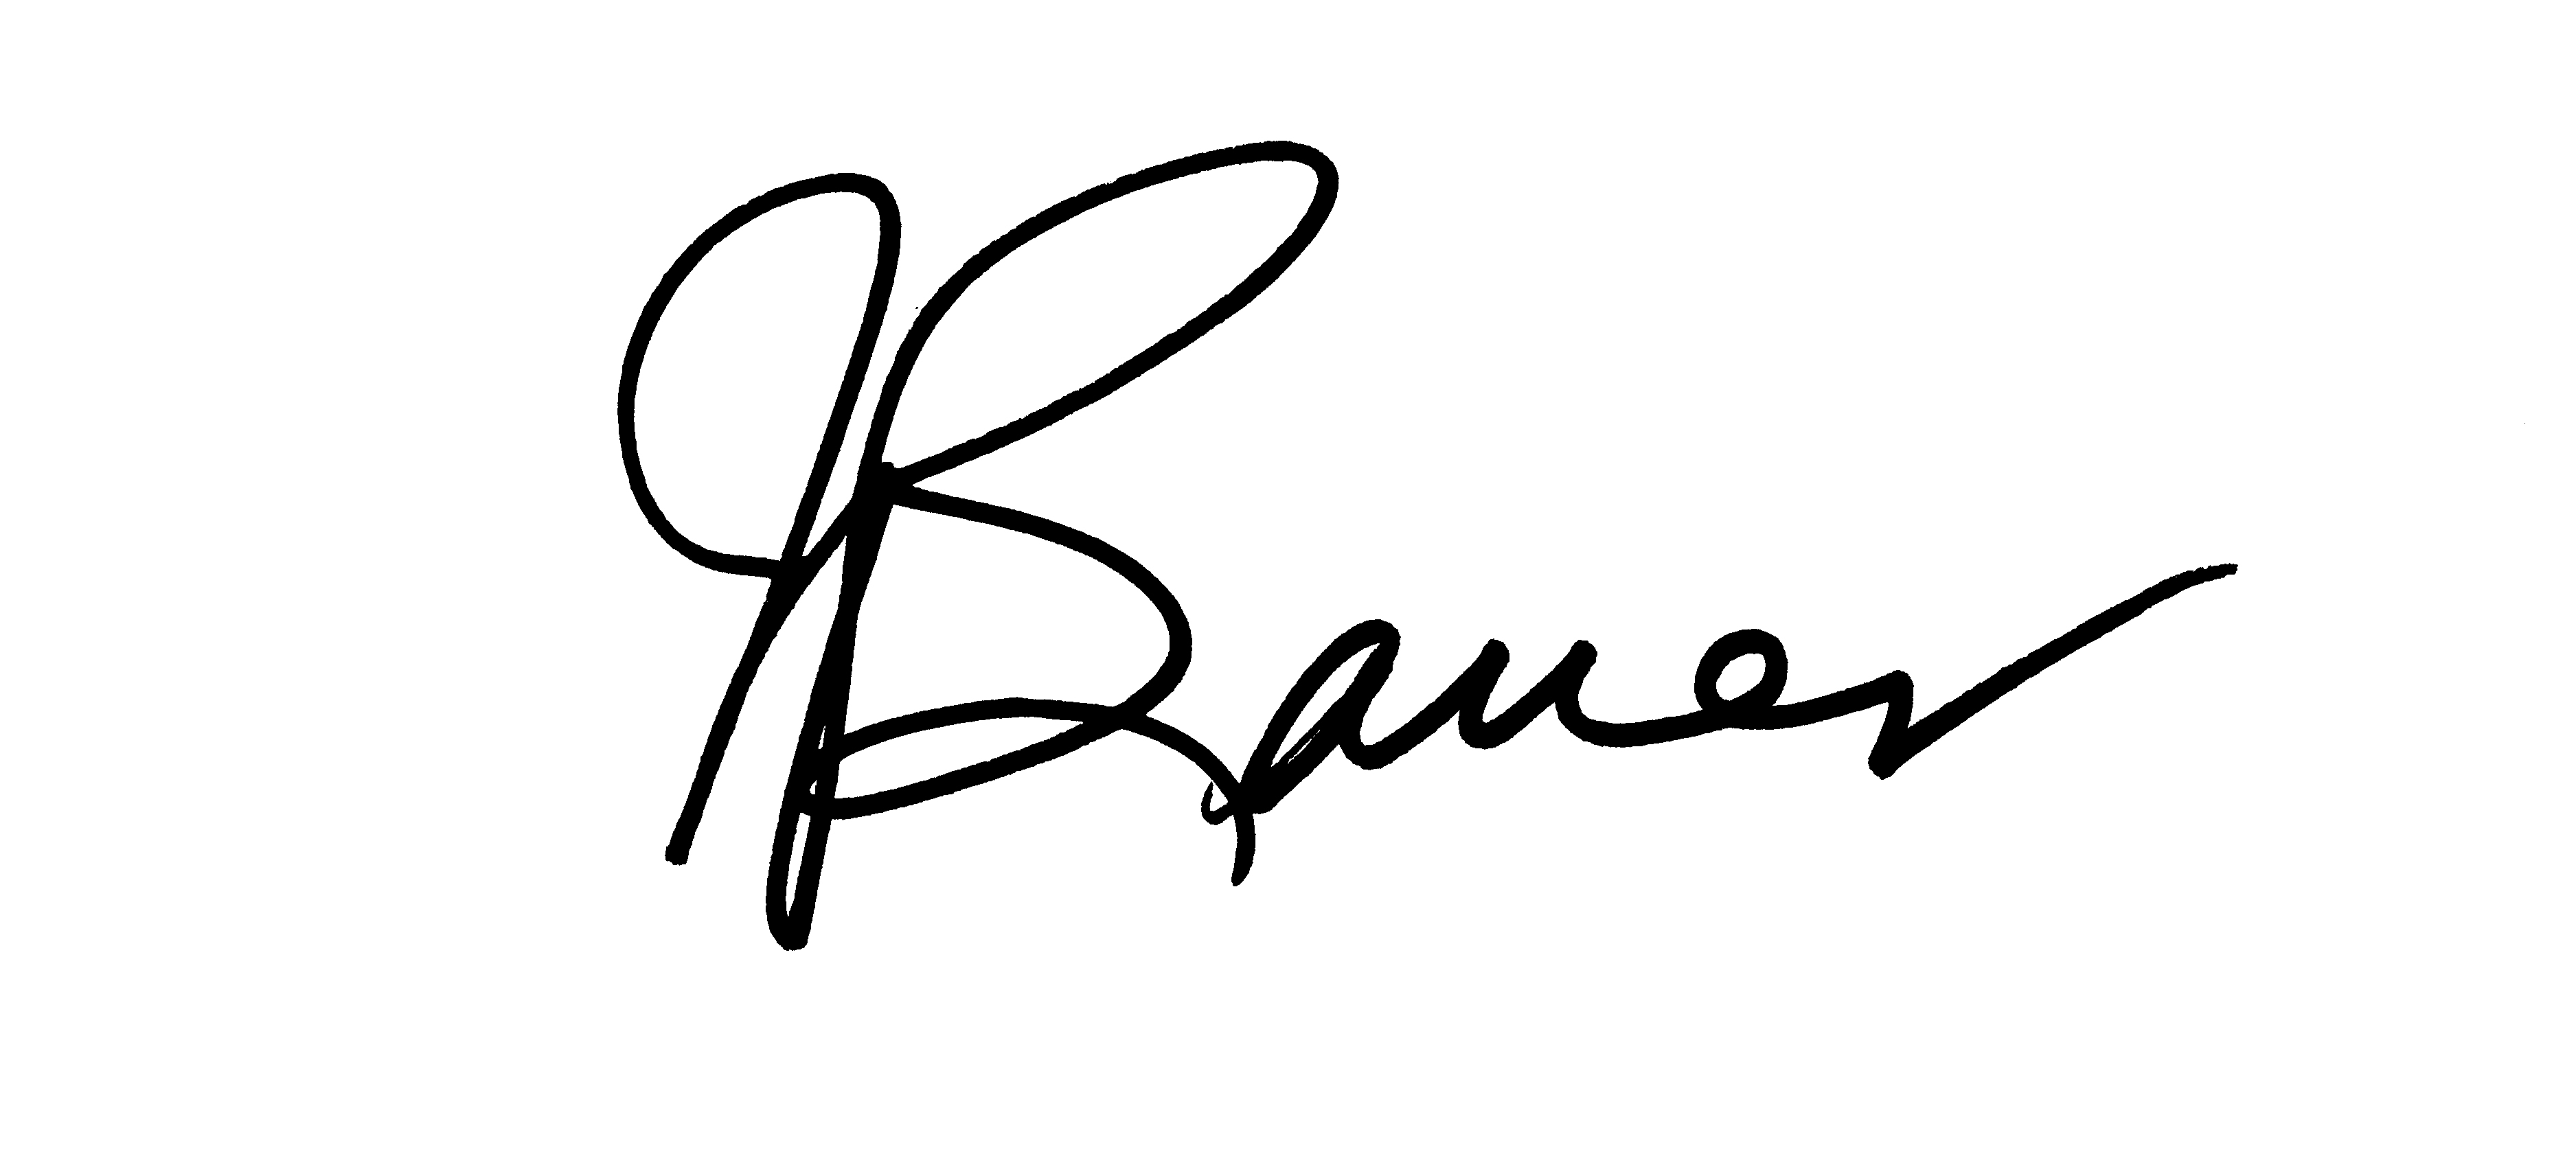 Jerry Bauer Signature